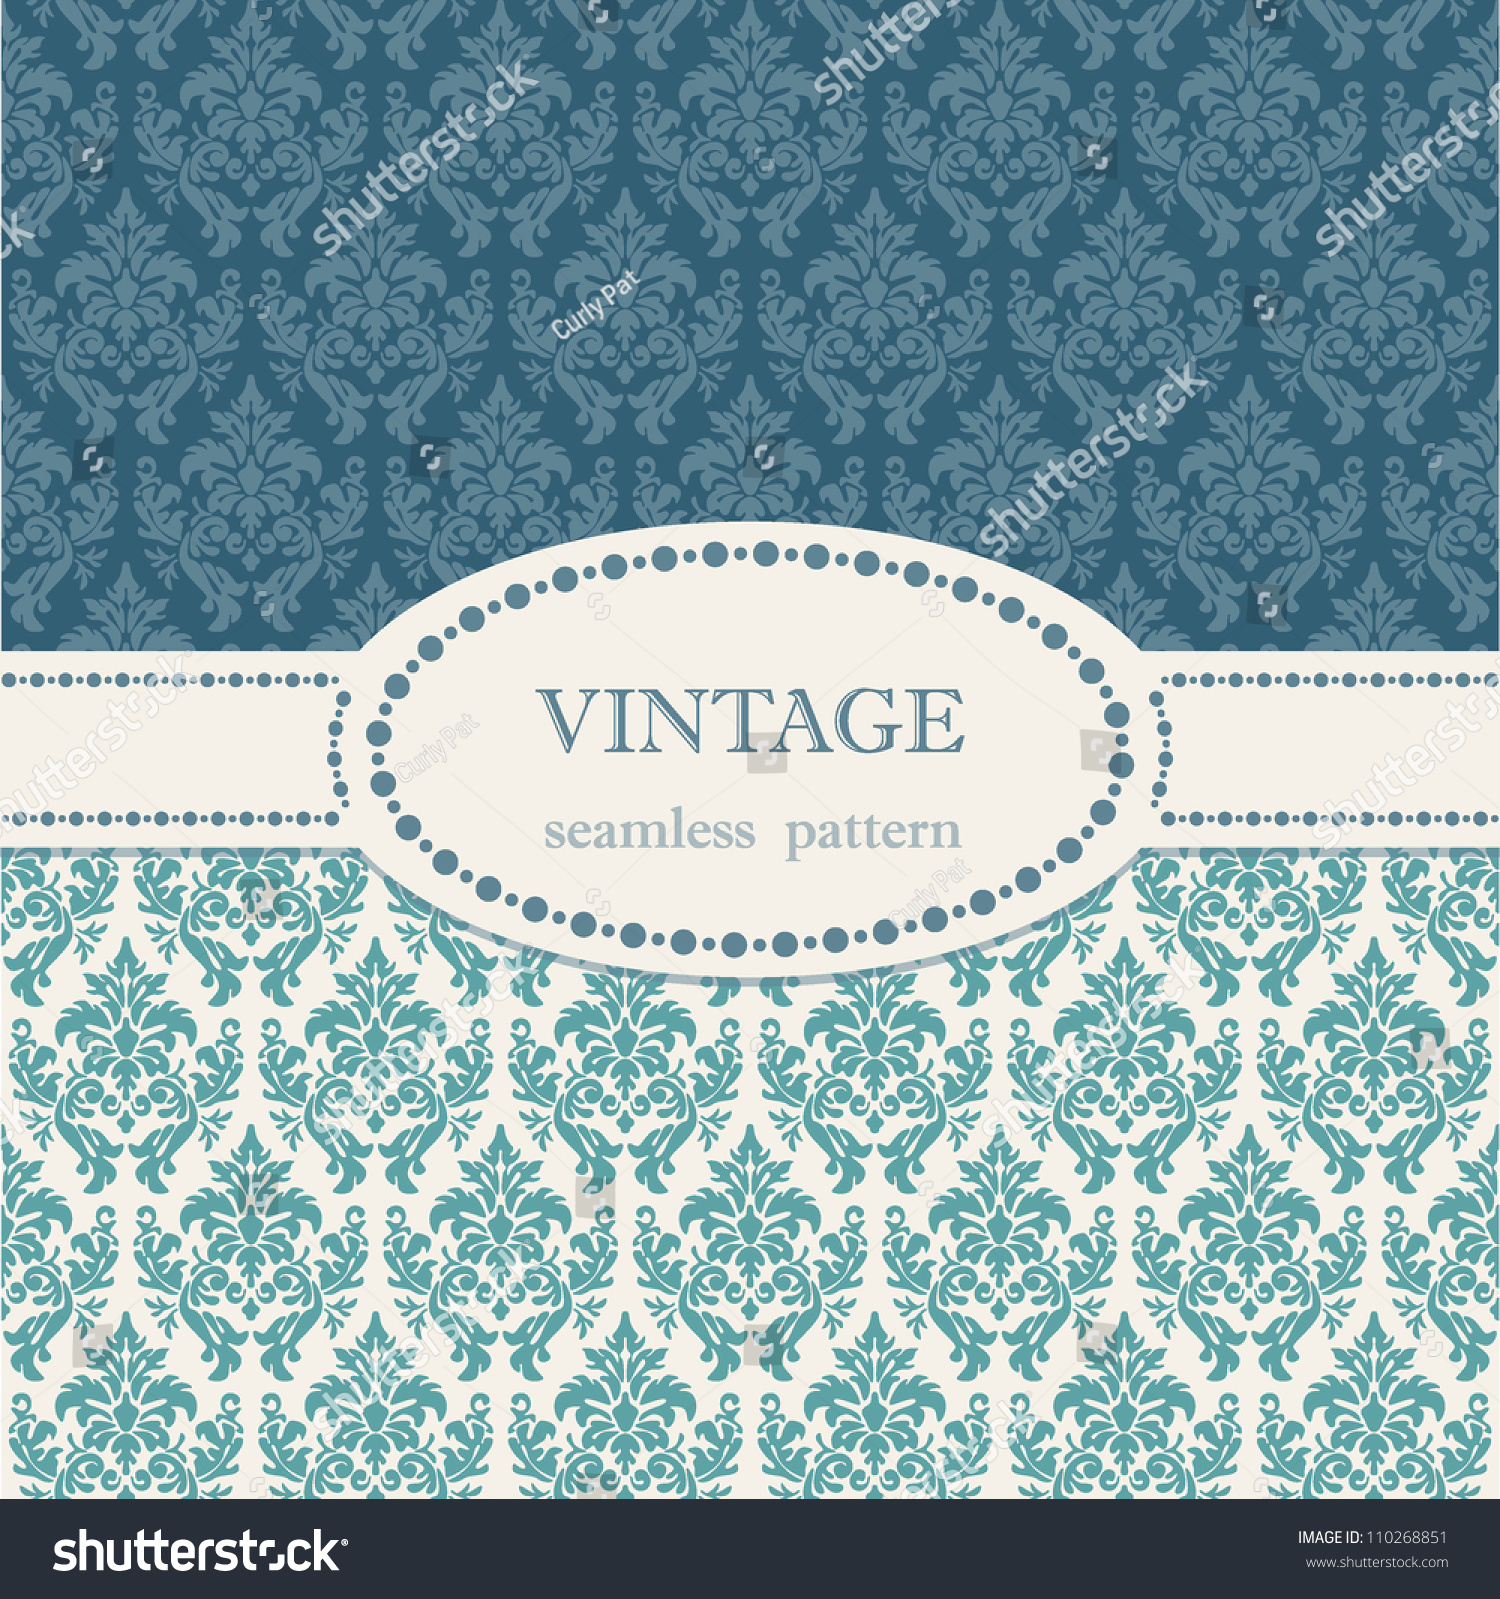 vintage repeating wallpaper - photo #9